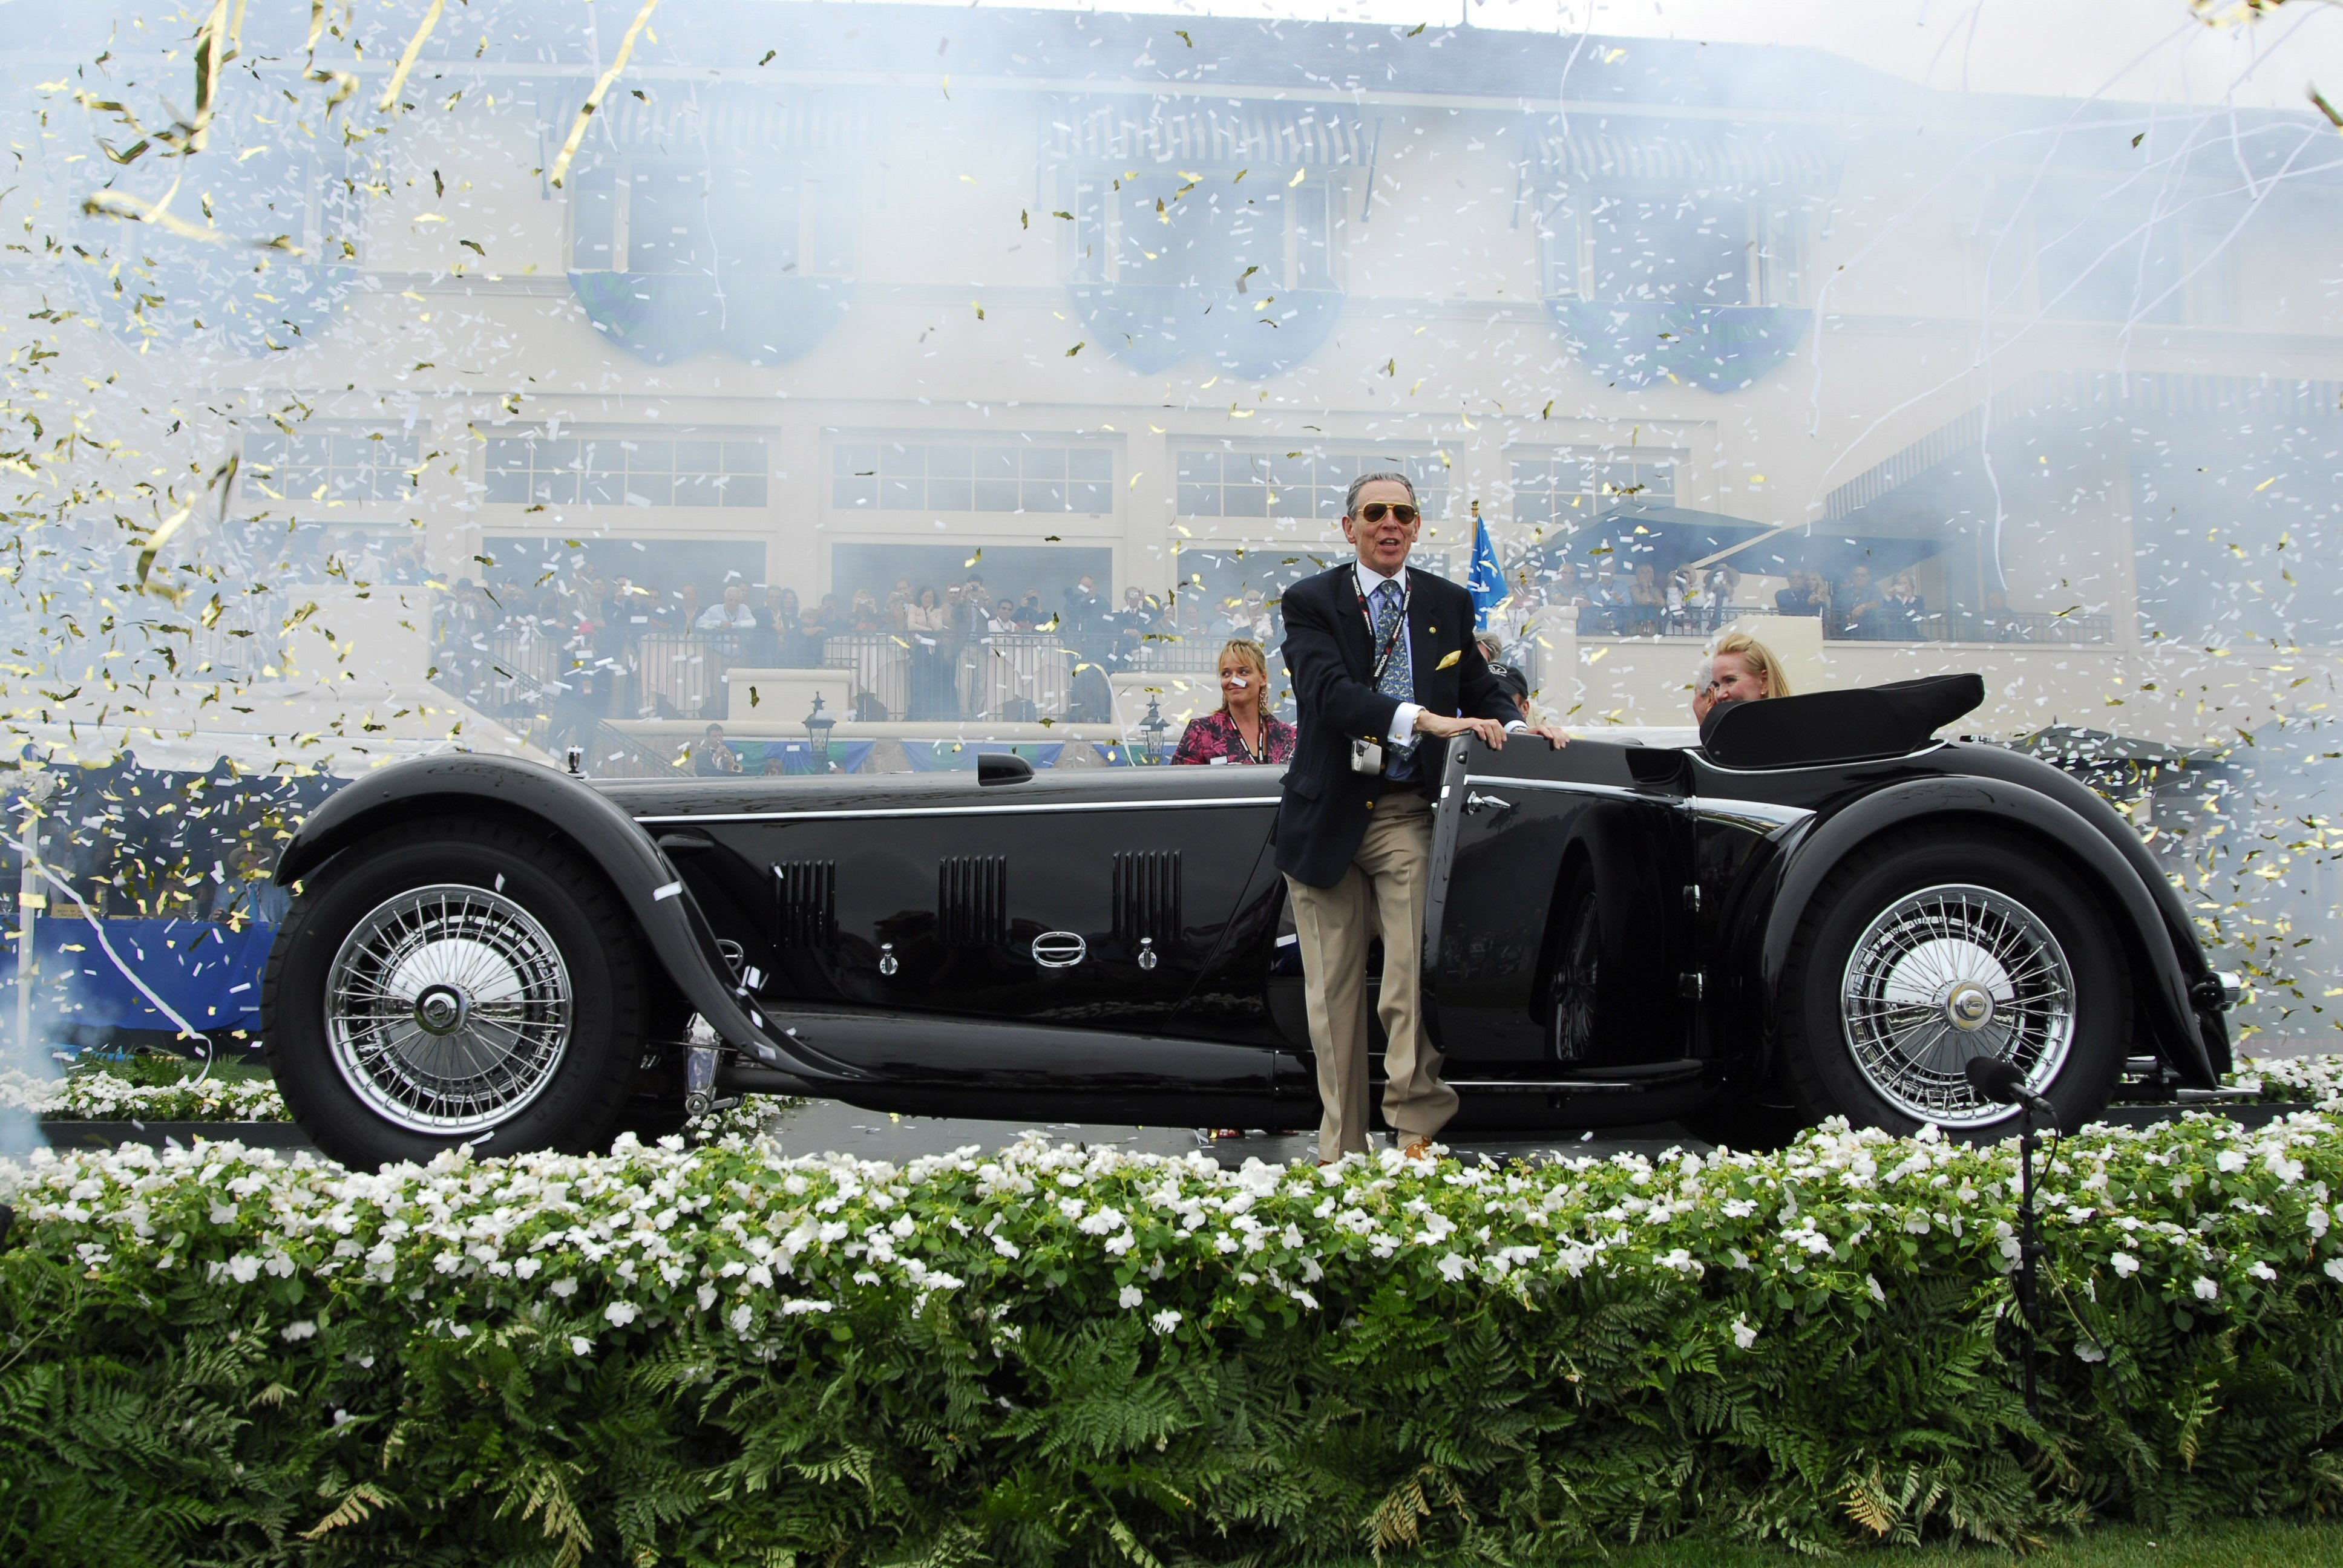 2020 Pebble Beach Best Of Show 1931 Daimler   Best Of Show At Pebble Beach Concours D'Elegance